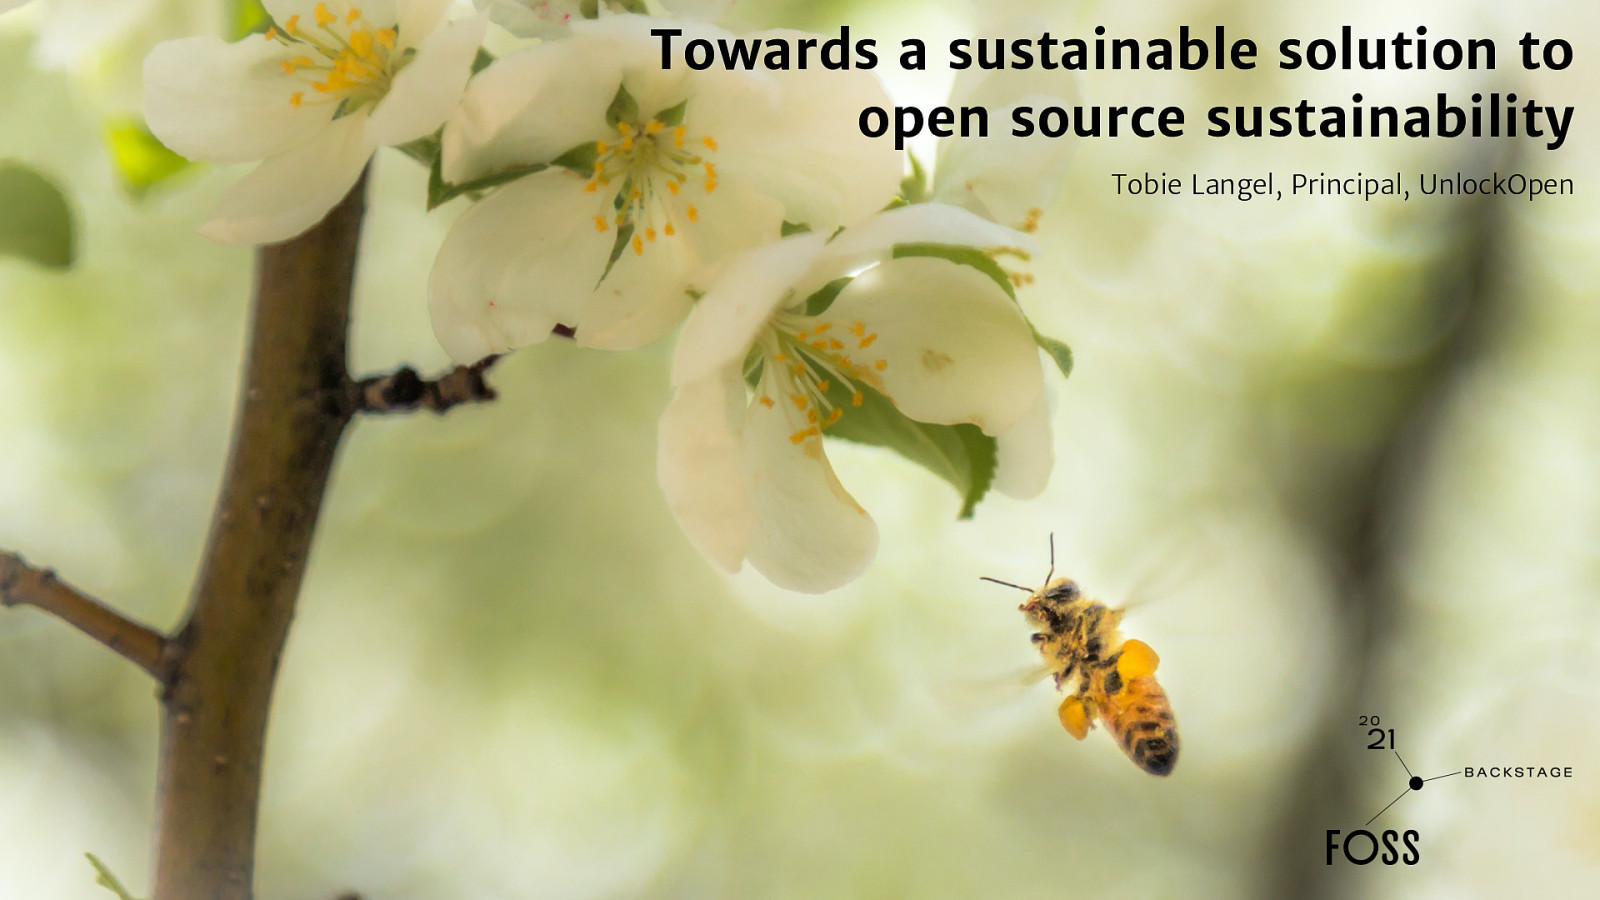 Towards a sustainable solution to open source sustainability